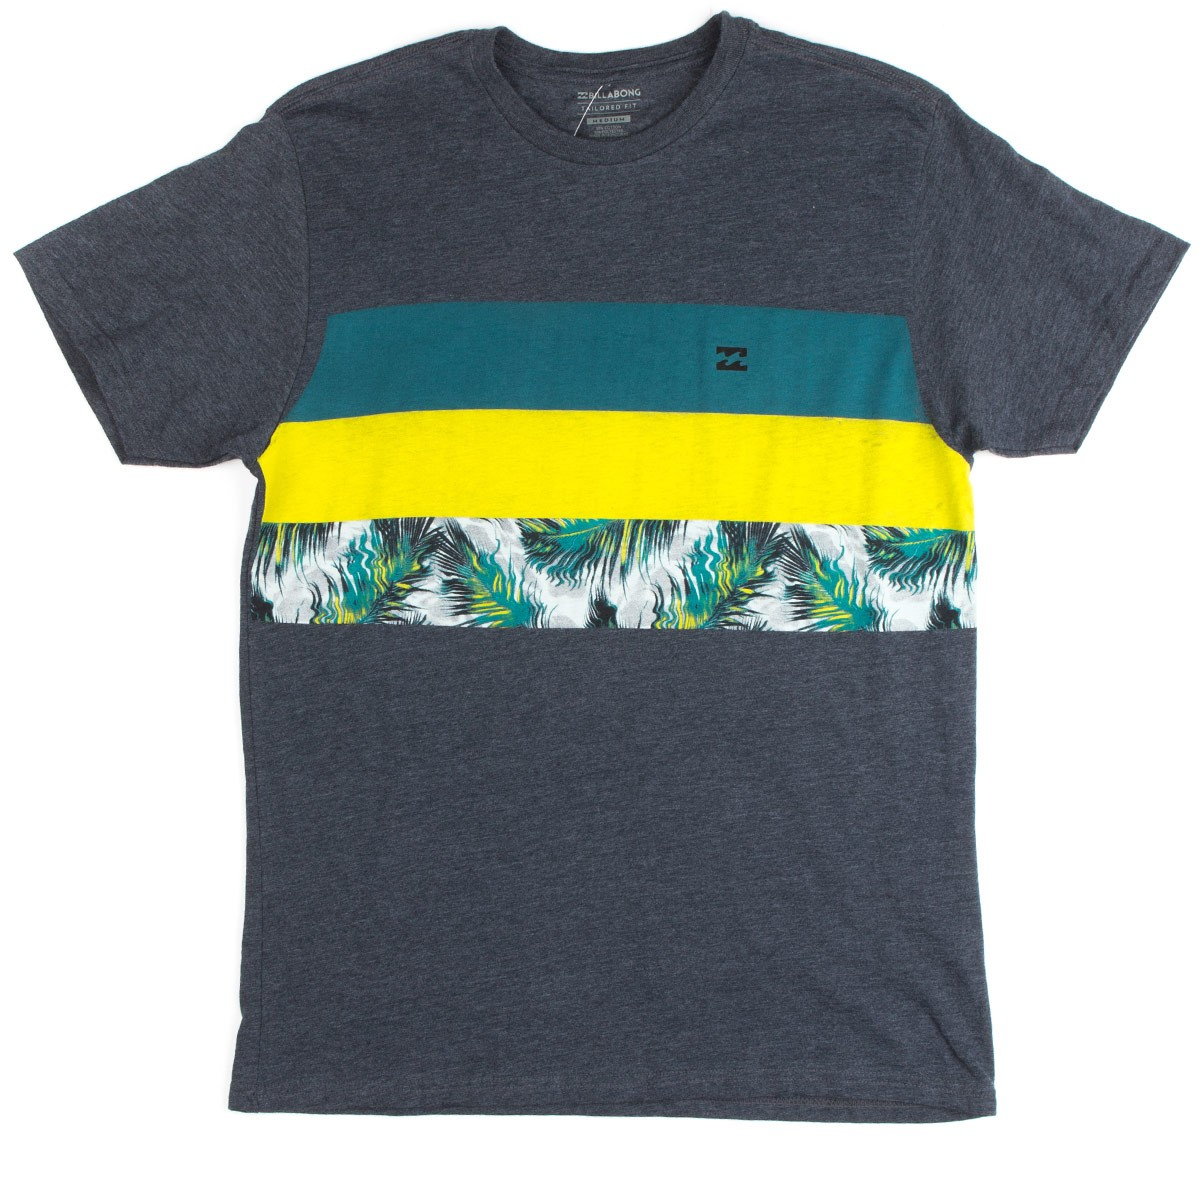 billabong tshirt  Billabong Tribong Spin T-Shirt - Indigo Heather